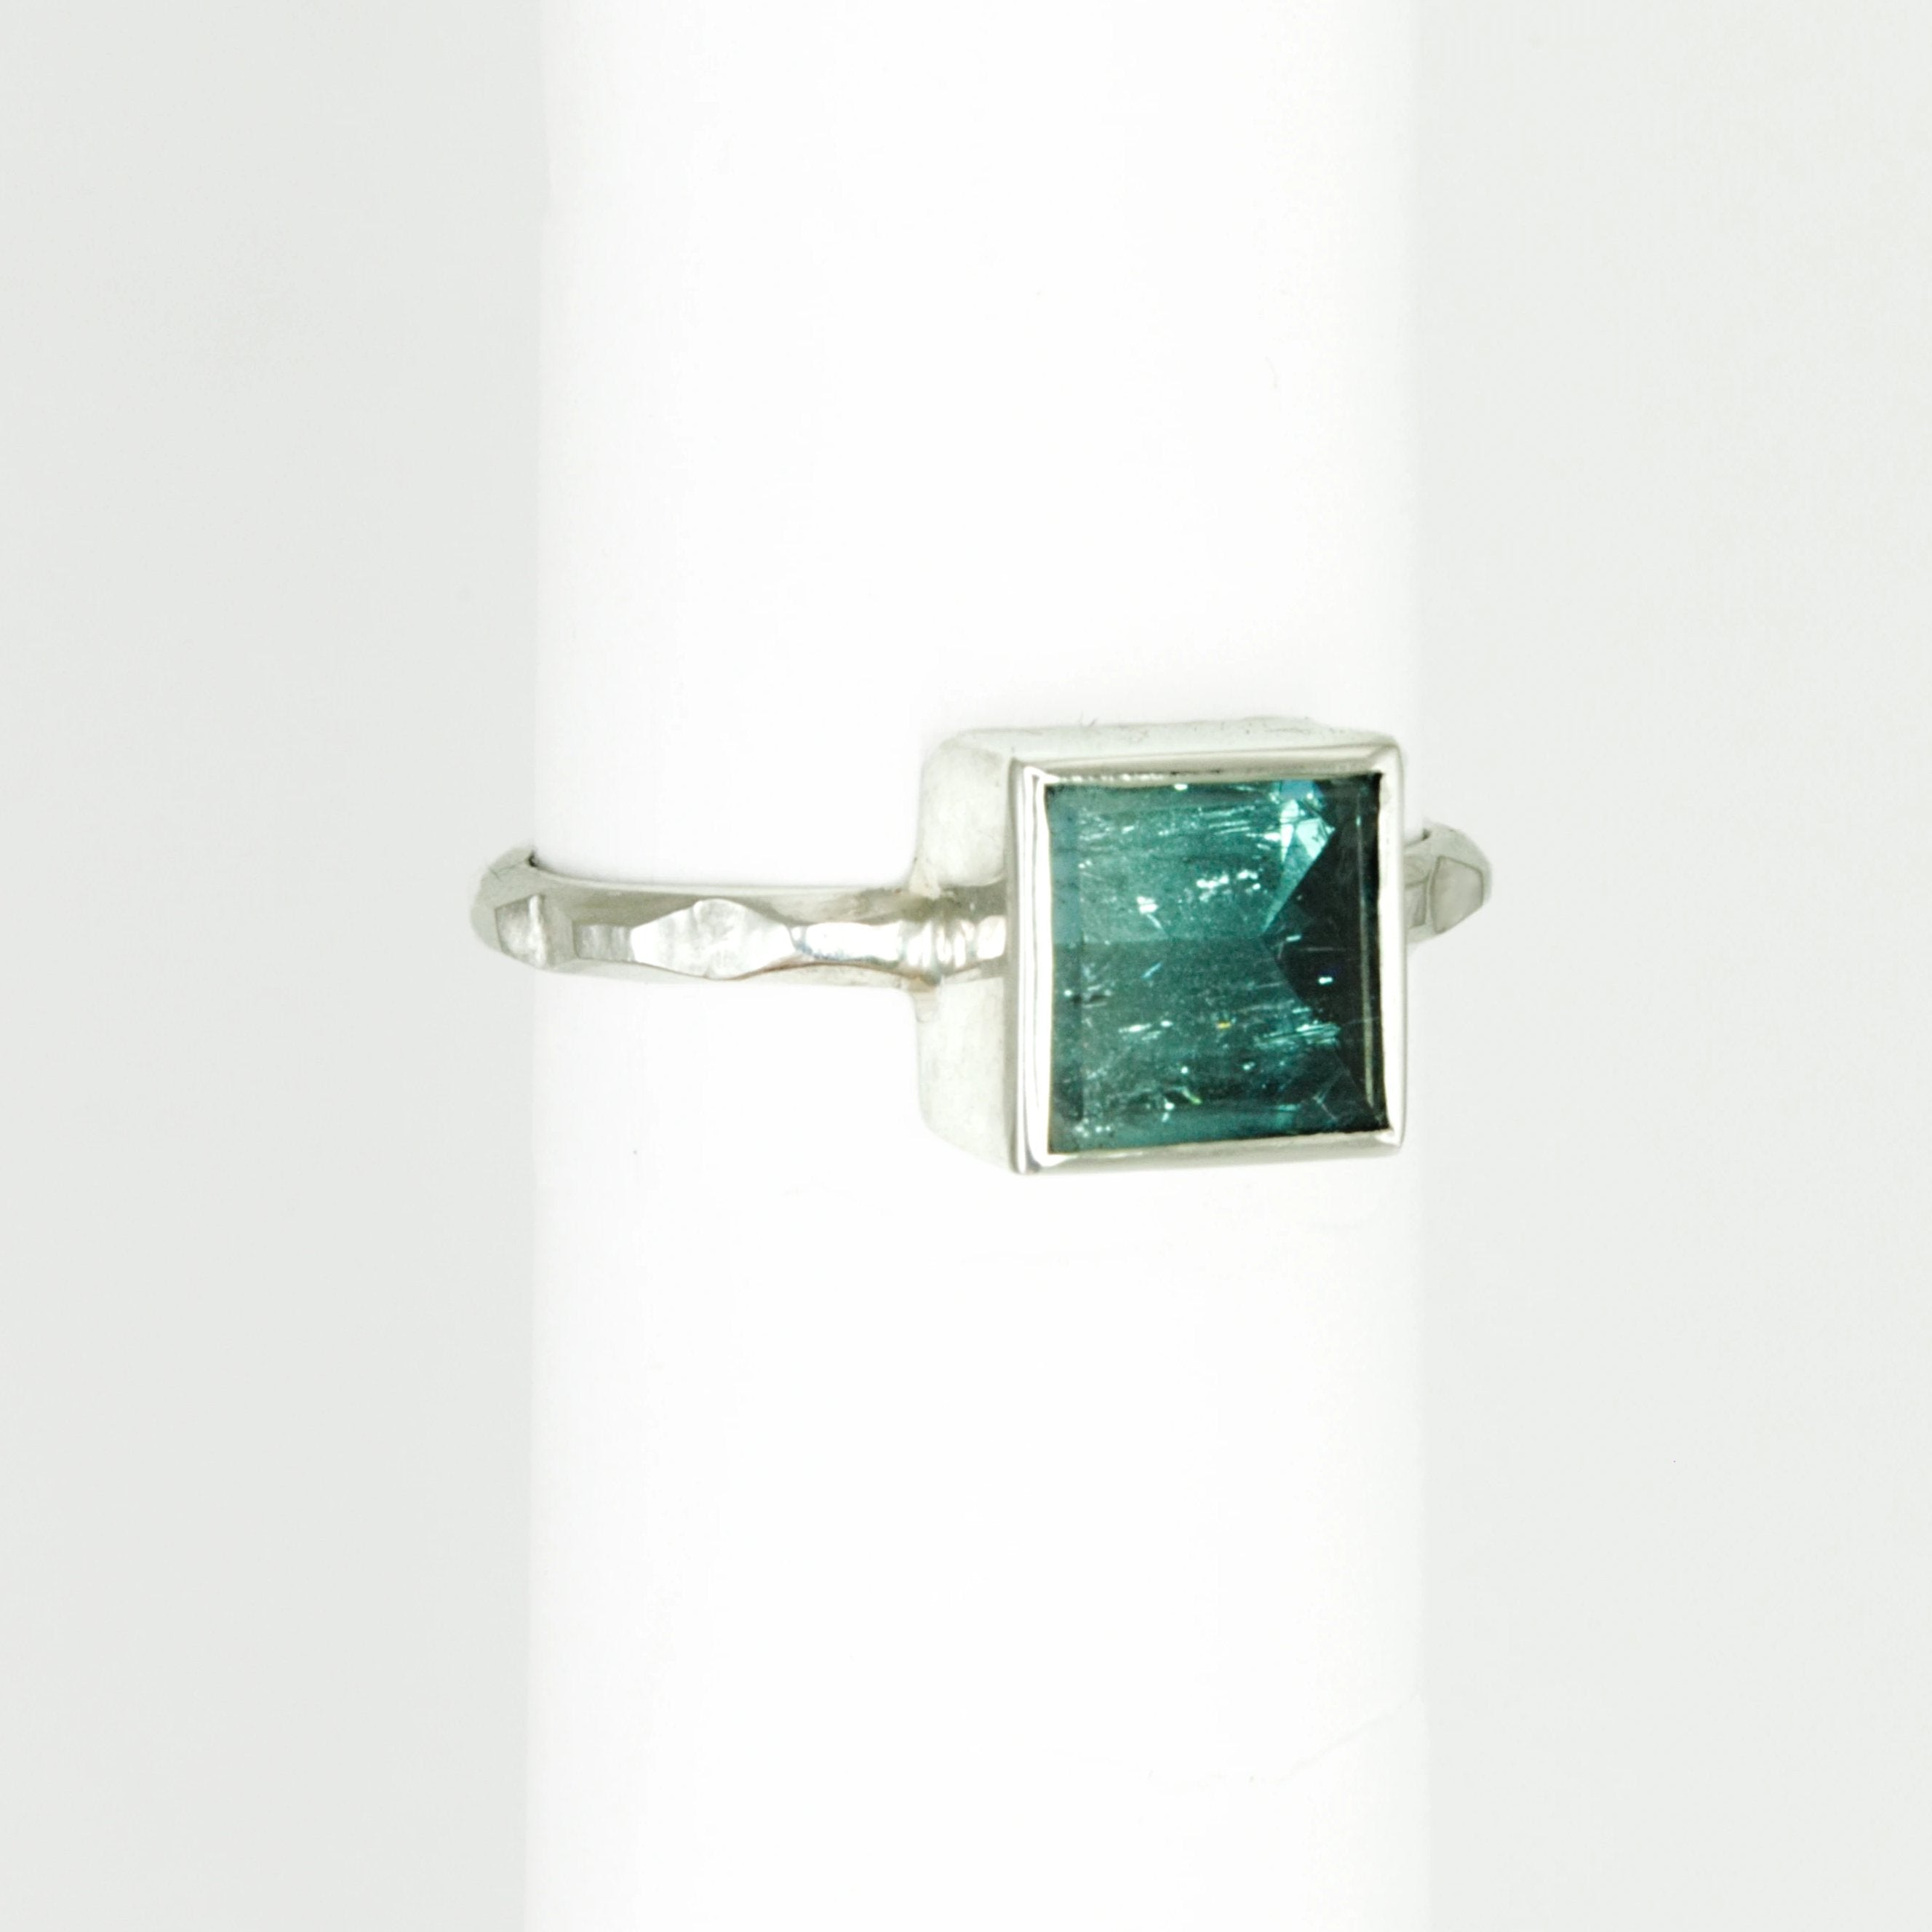 Ombre Blue Tourmaline Frusta Ring - Size 7.5